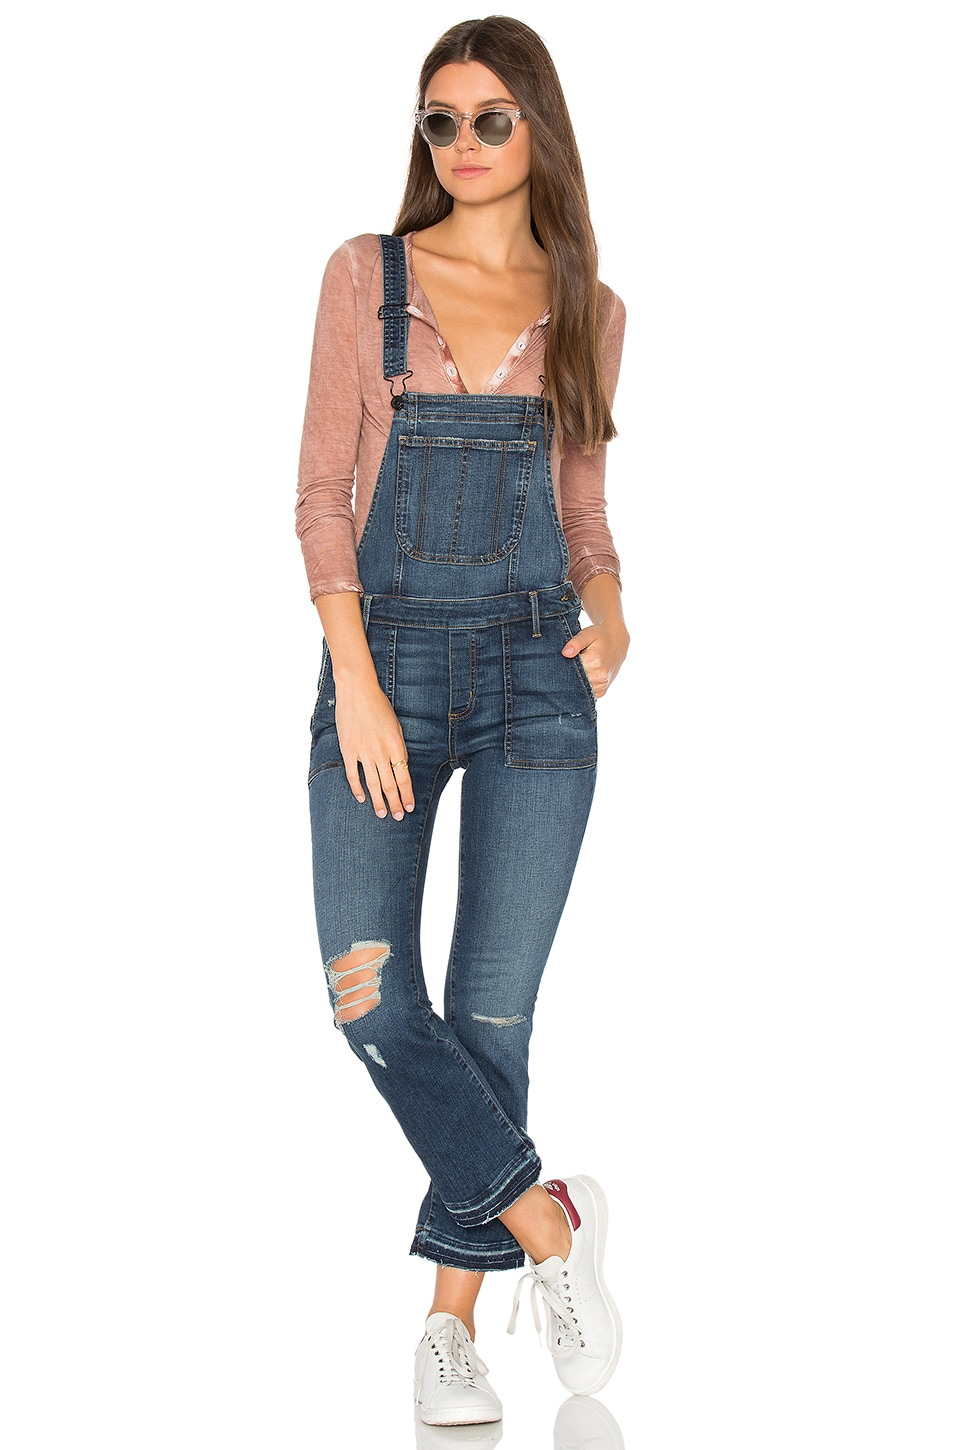 x REVOLVE Mia Crop Overall by Black Orchid